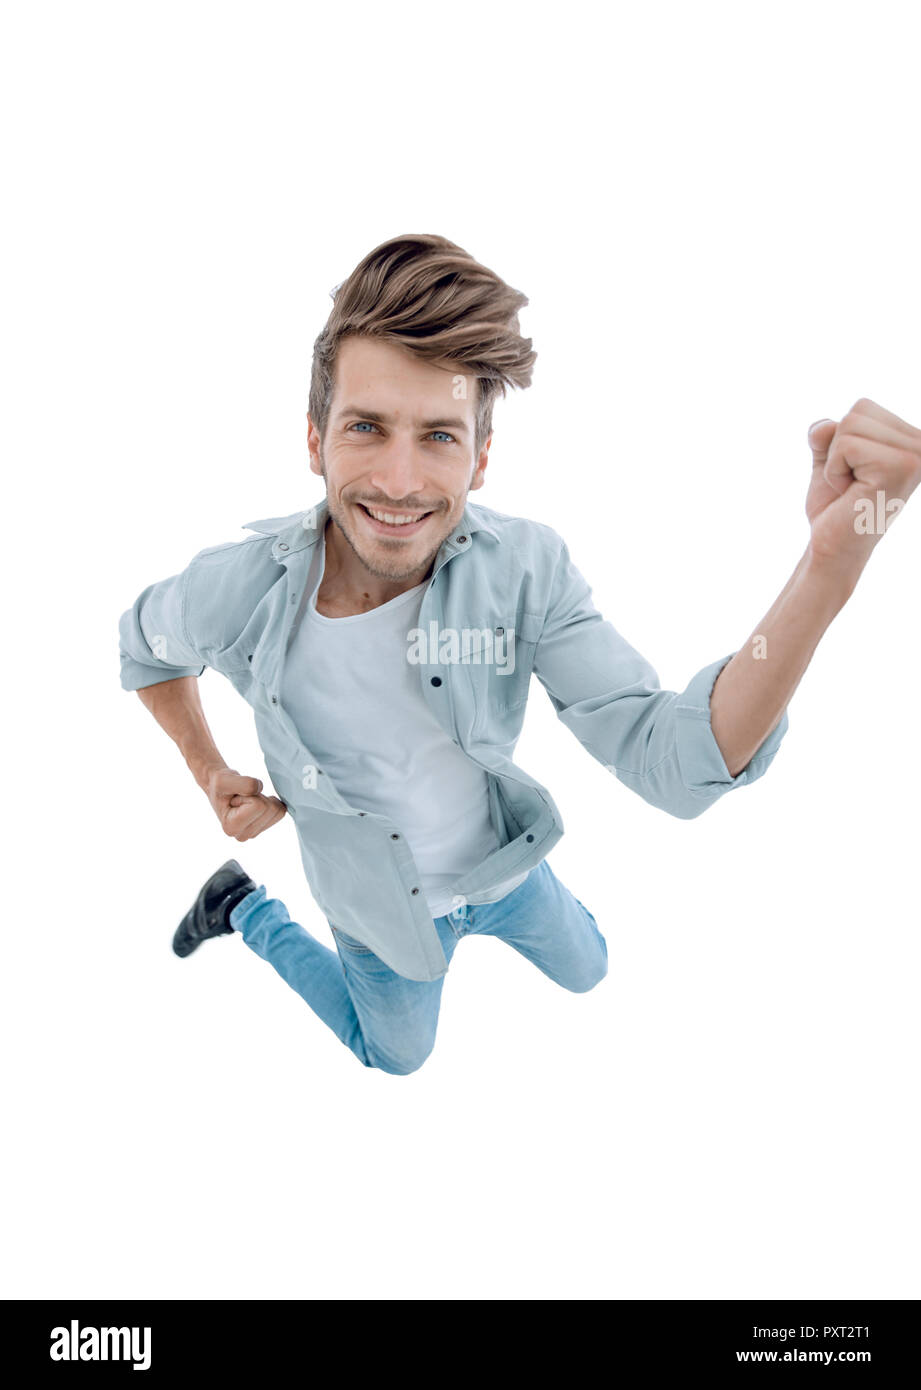 the man in jeans jumped like a superman. man in studio - Stock Image